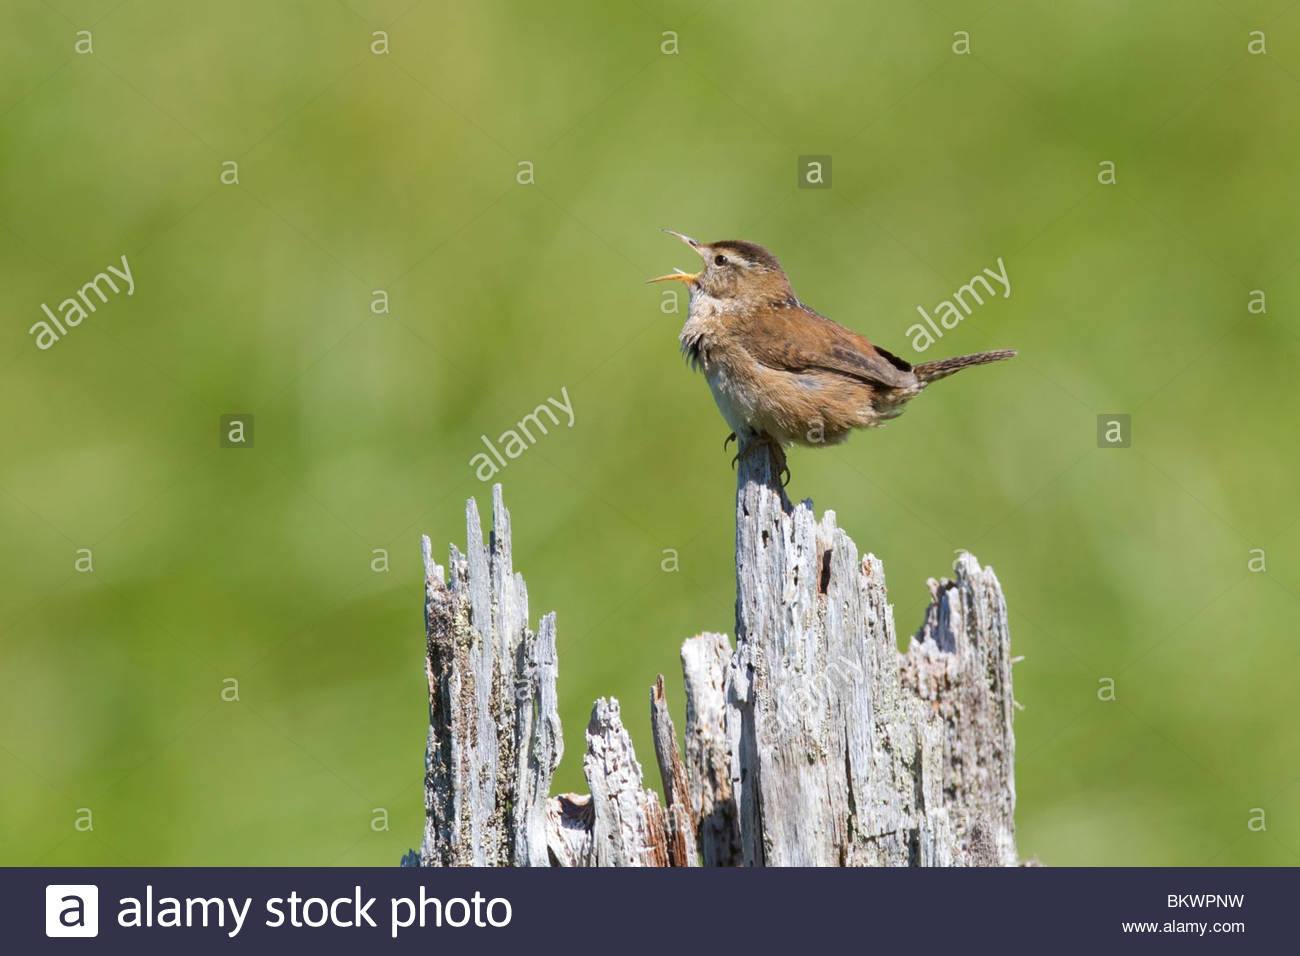 A marsh wren (Cistothorus palustris) sings from its perch in the Grays Harbor National Wildlife Refuge in Hoquiam, - Stock Image